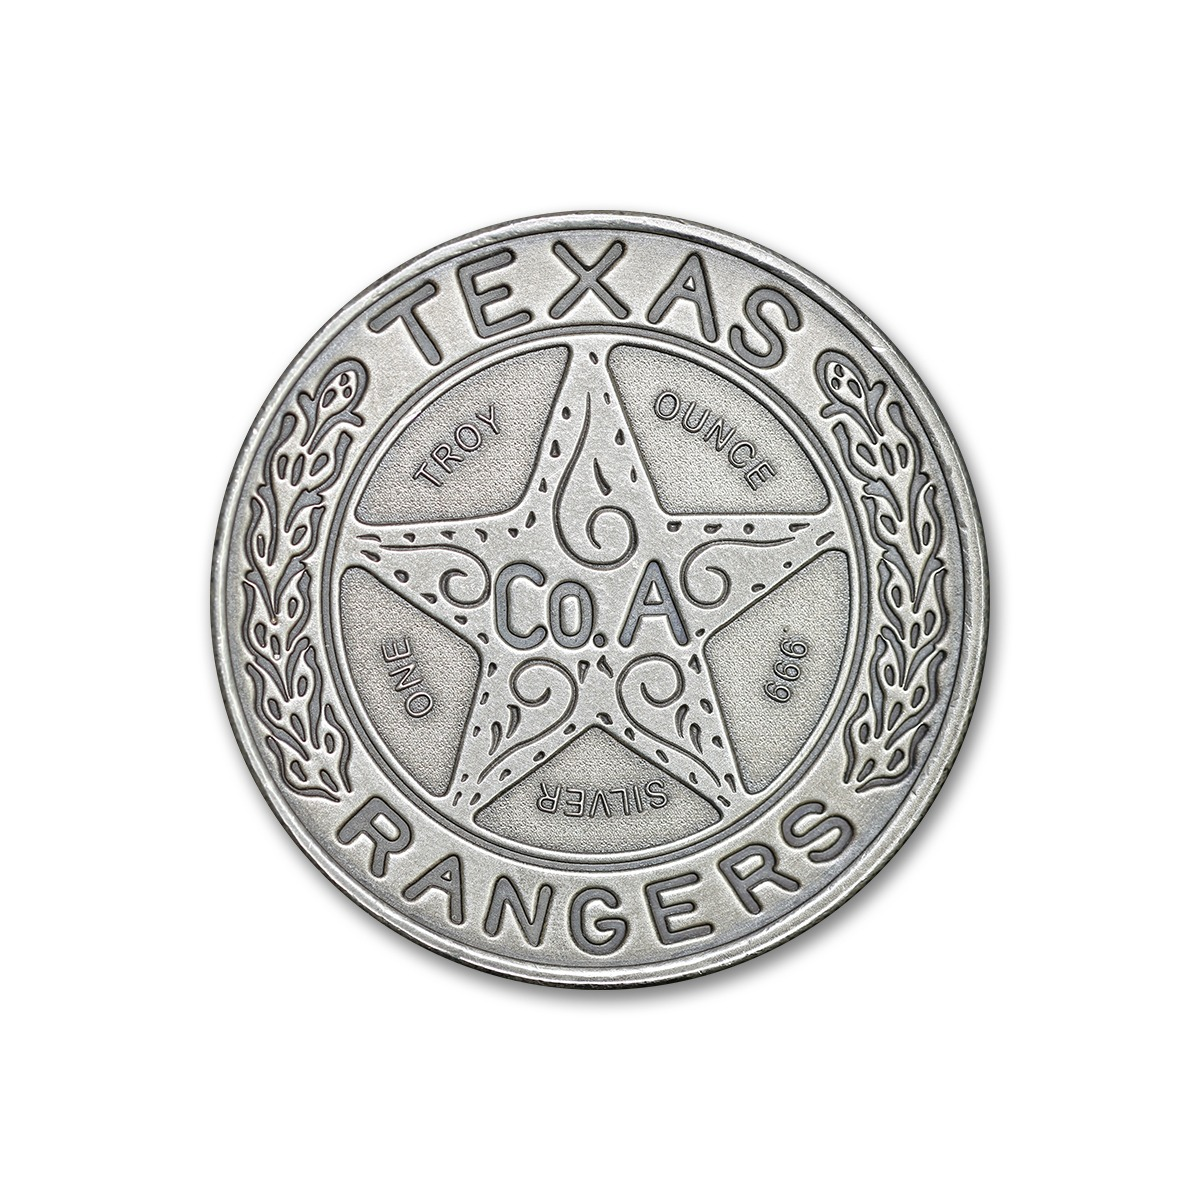 TEXAS RANGER BADGE – 1 TROY OUNCE – 39MM (ANTIQUED)